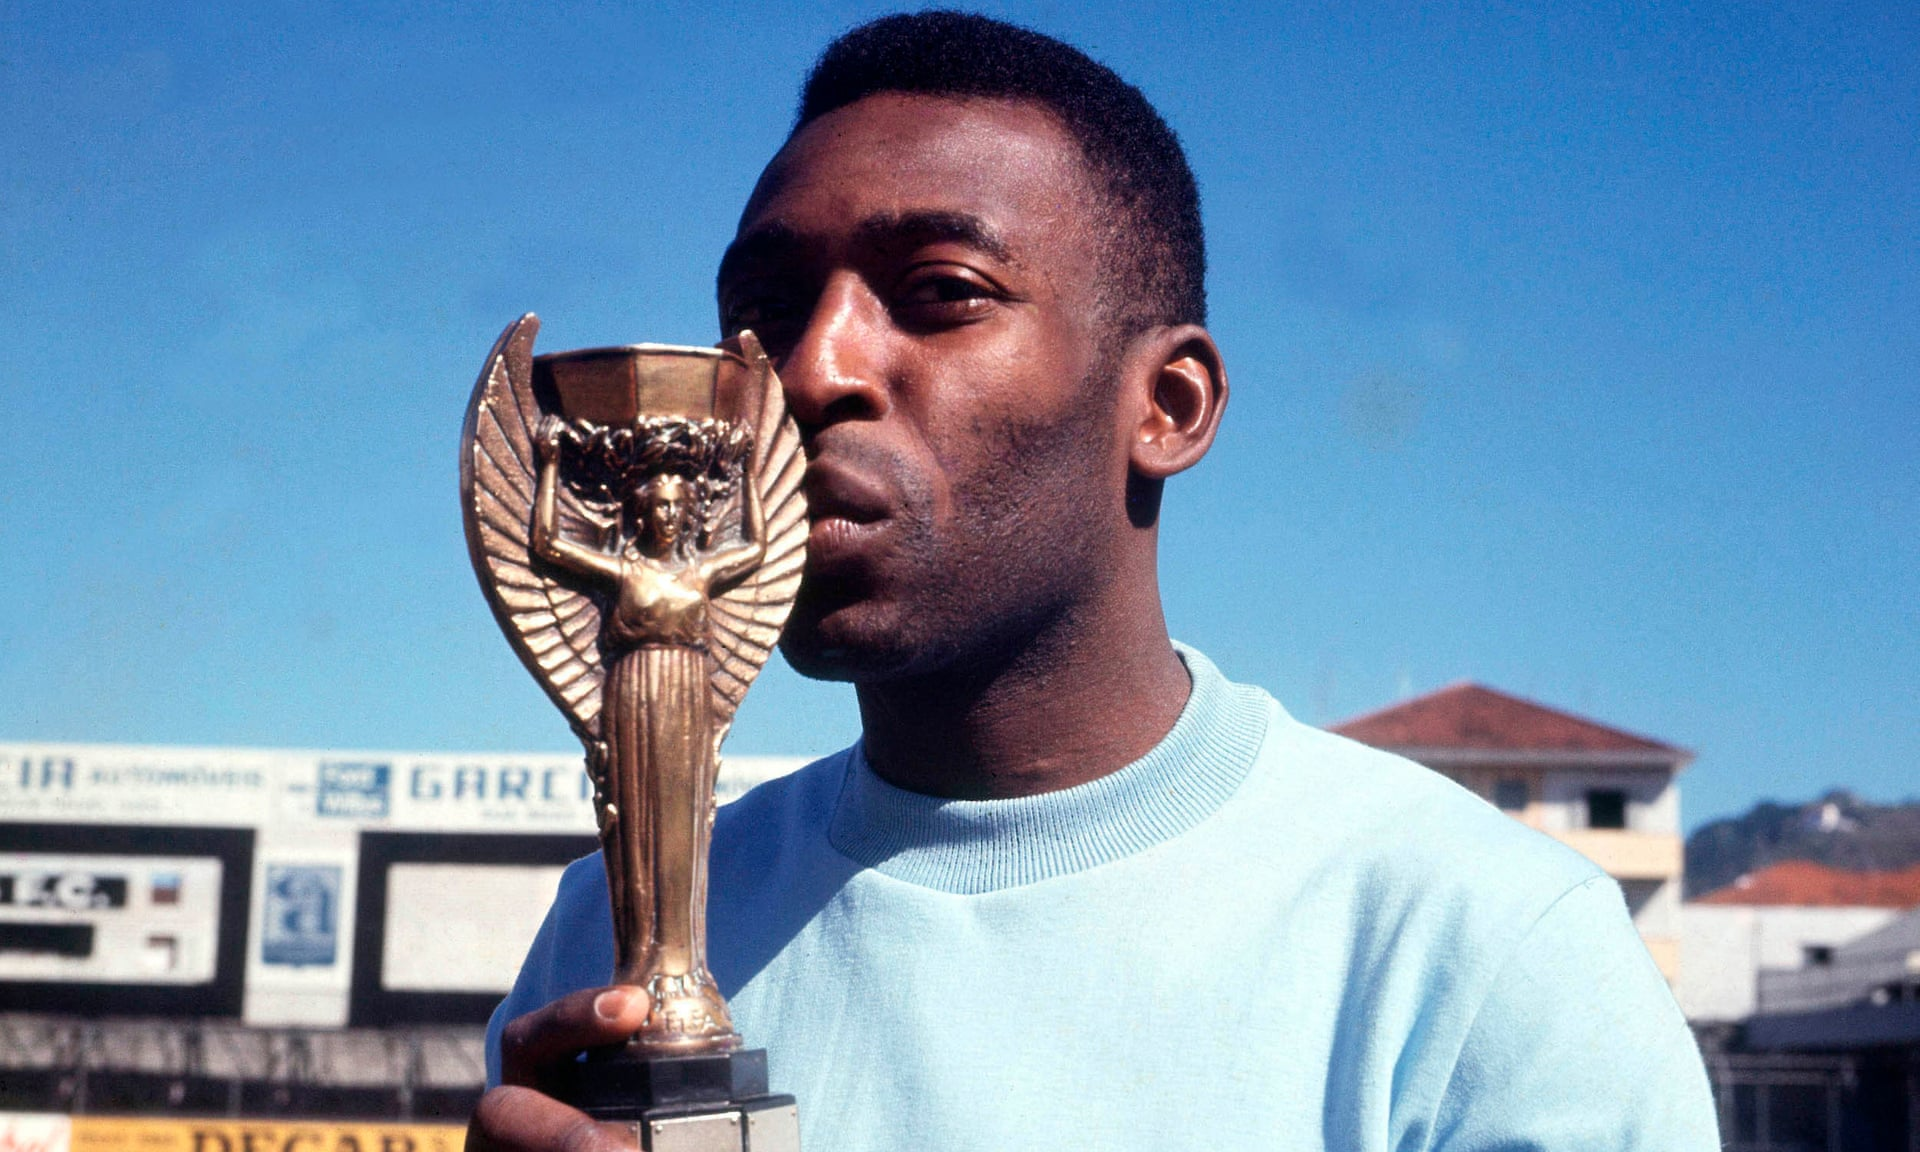 Pele kisses the Jules Rimet Trophy